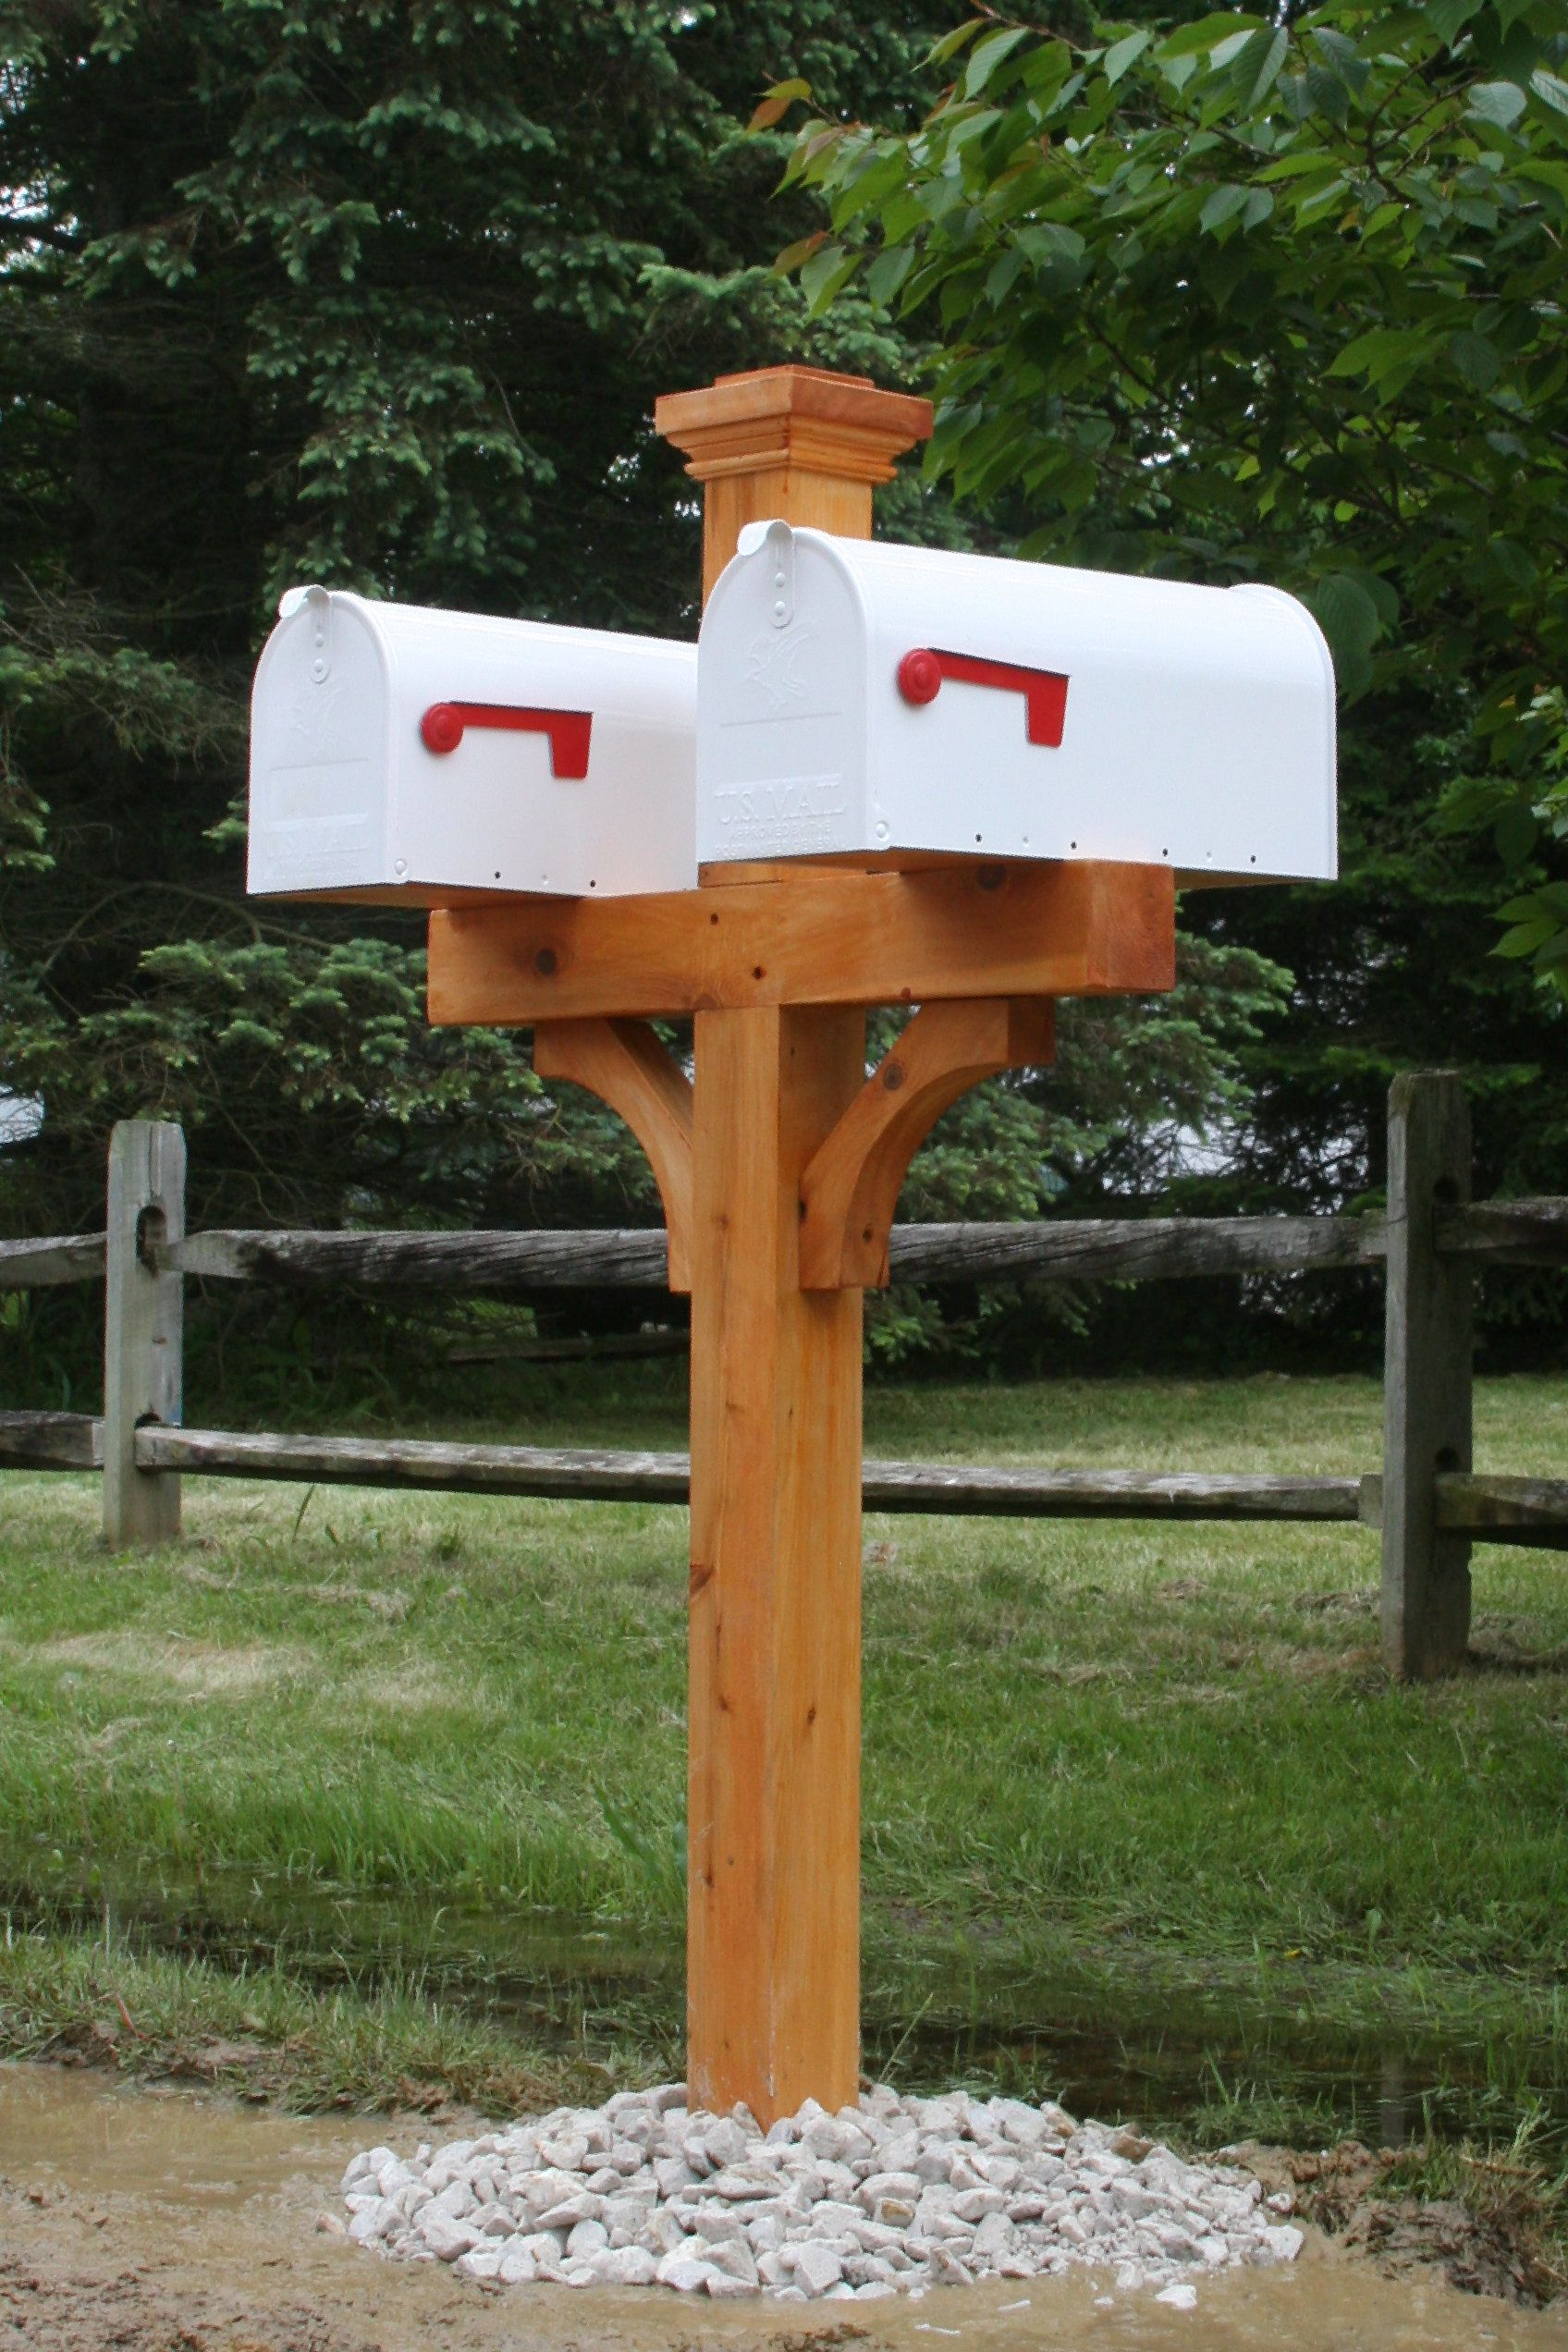 Double Cedar Mailbox Post With 2 White Mailboxes